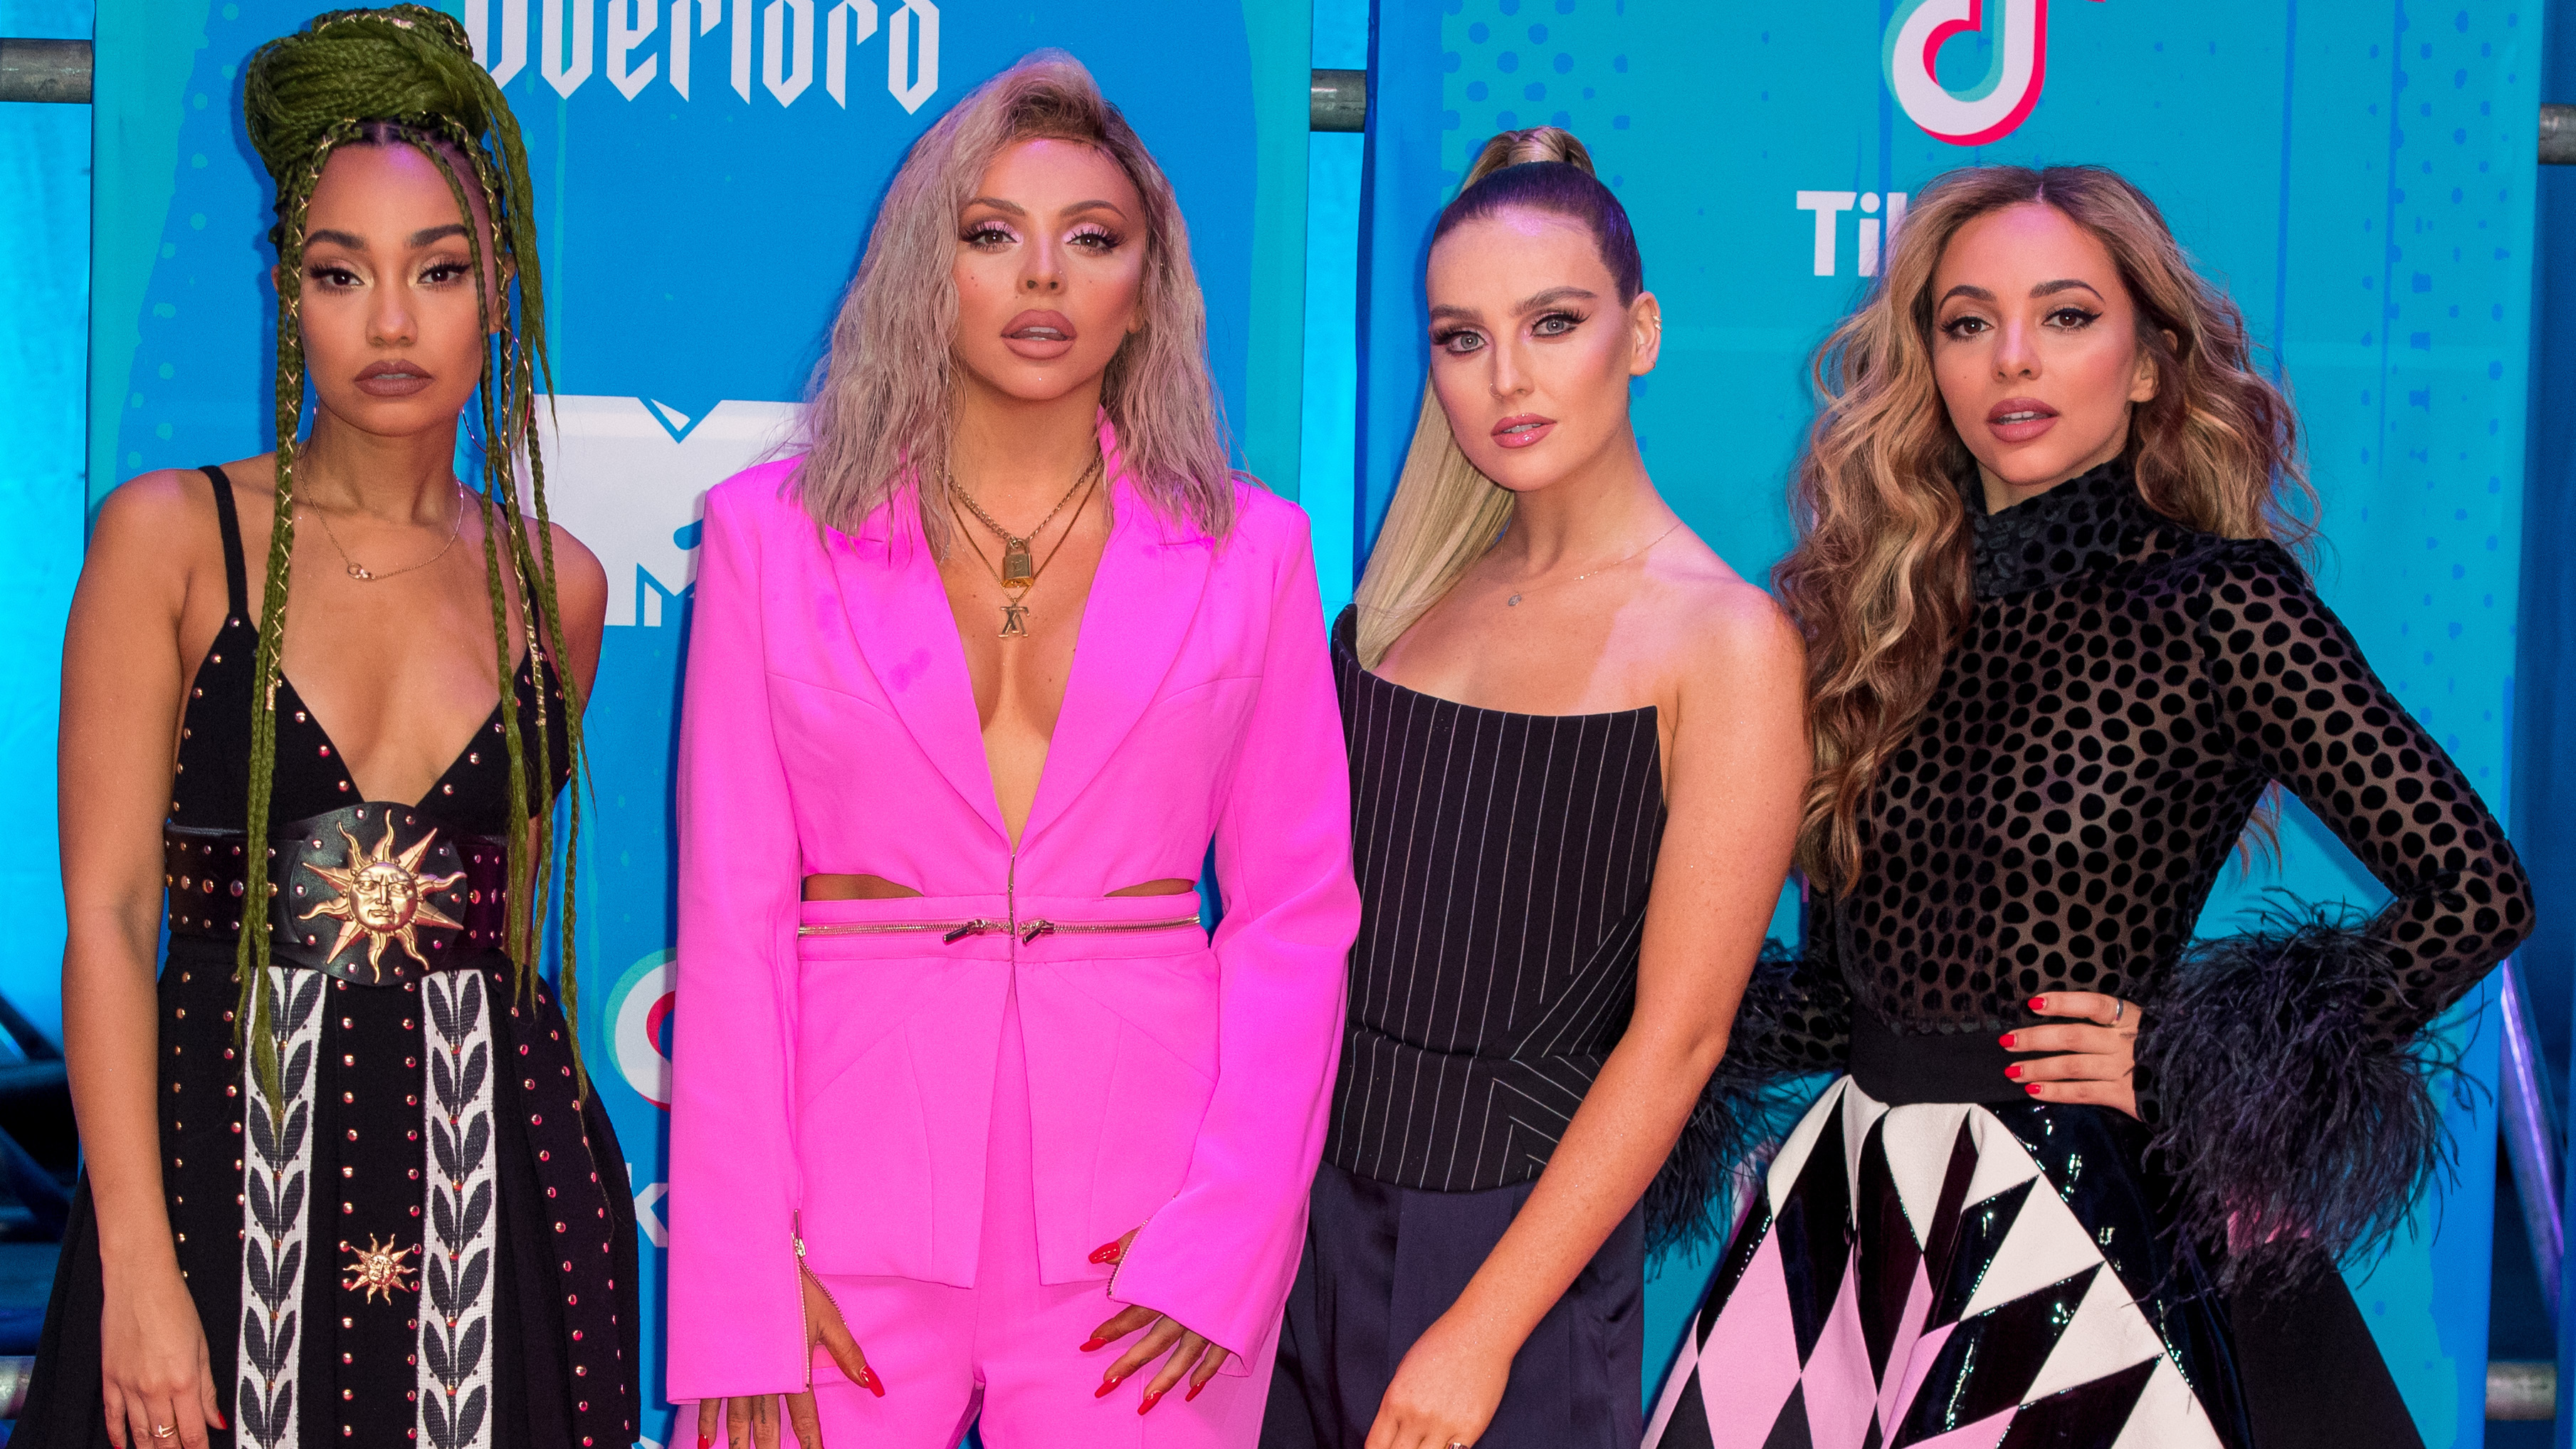 Little Mix Pose Naked Covered In Insults To Empower Other Women